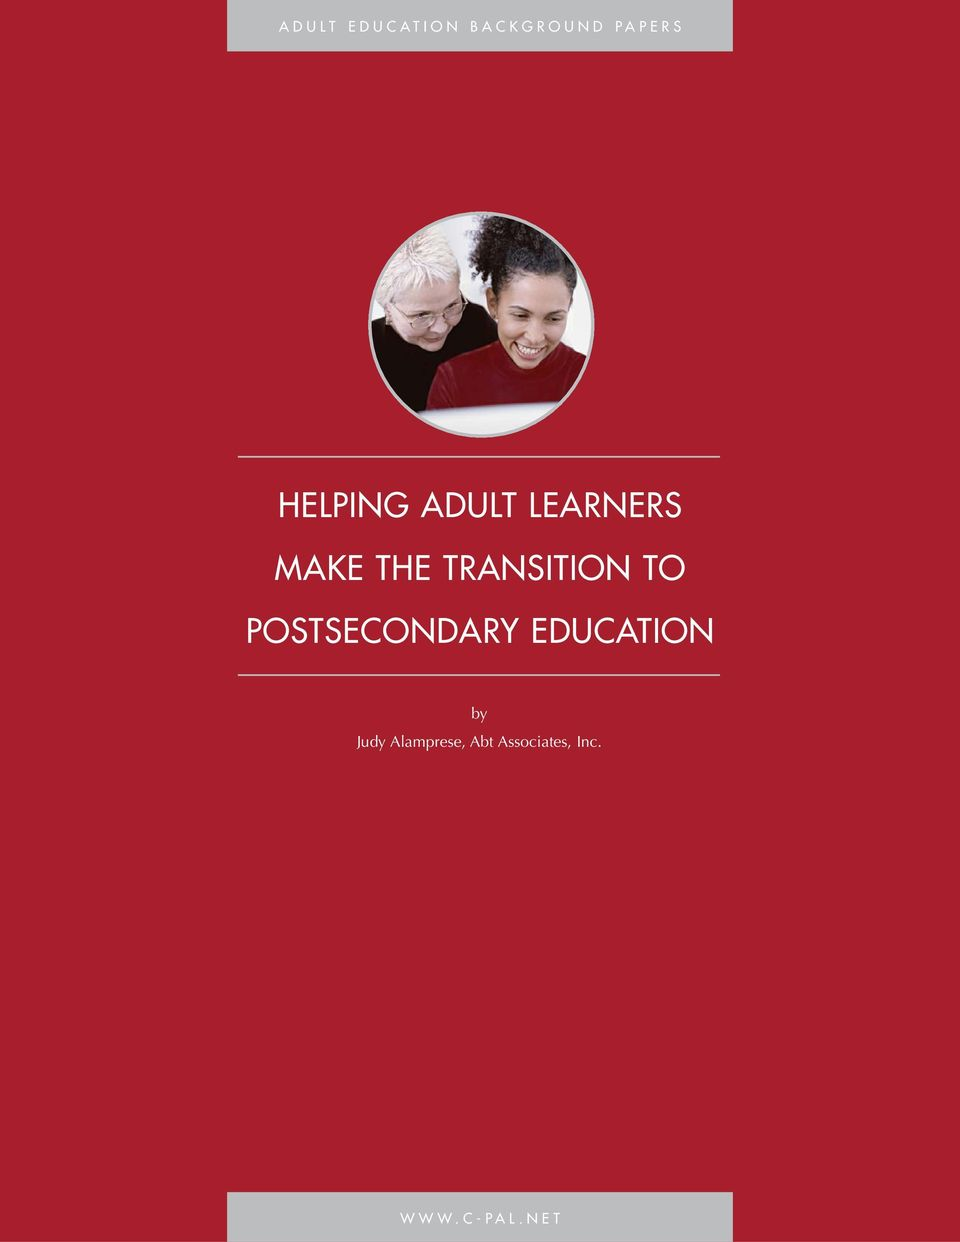 TRANSITION TO POSTSECONDARY EDUCATION